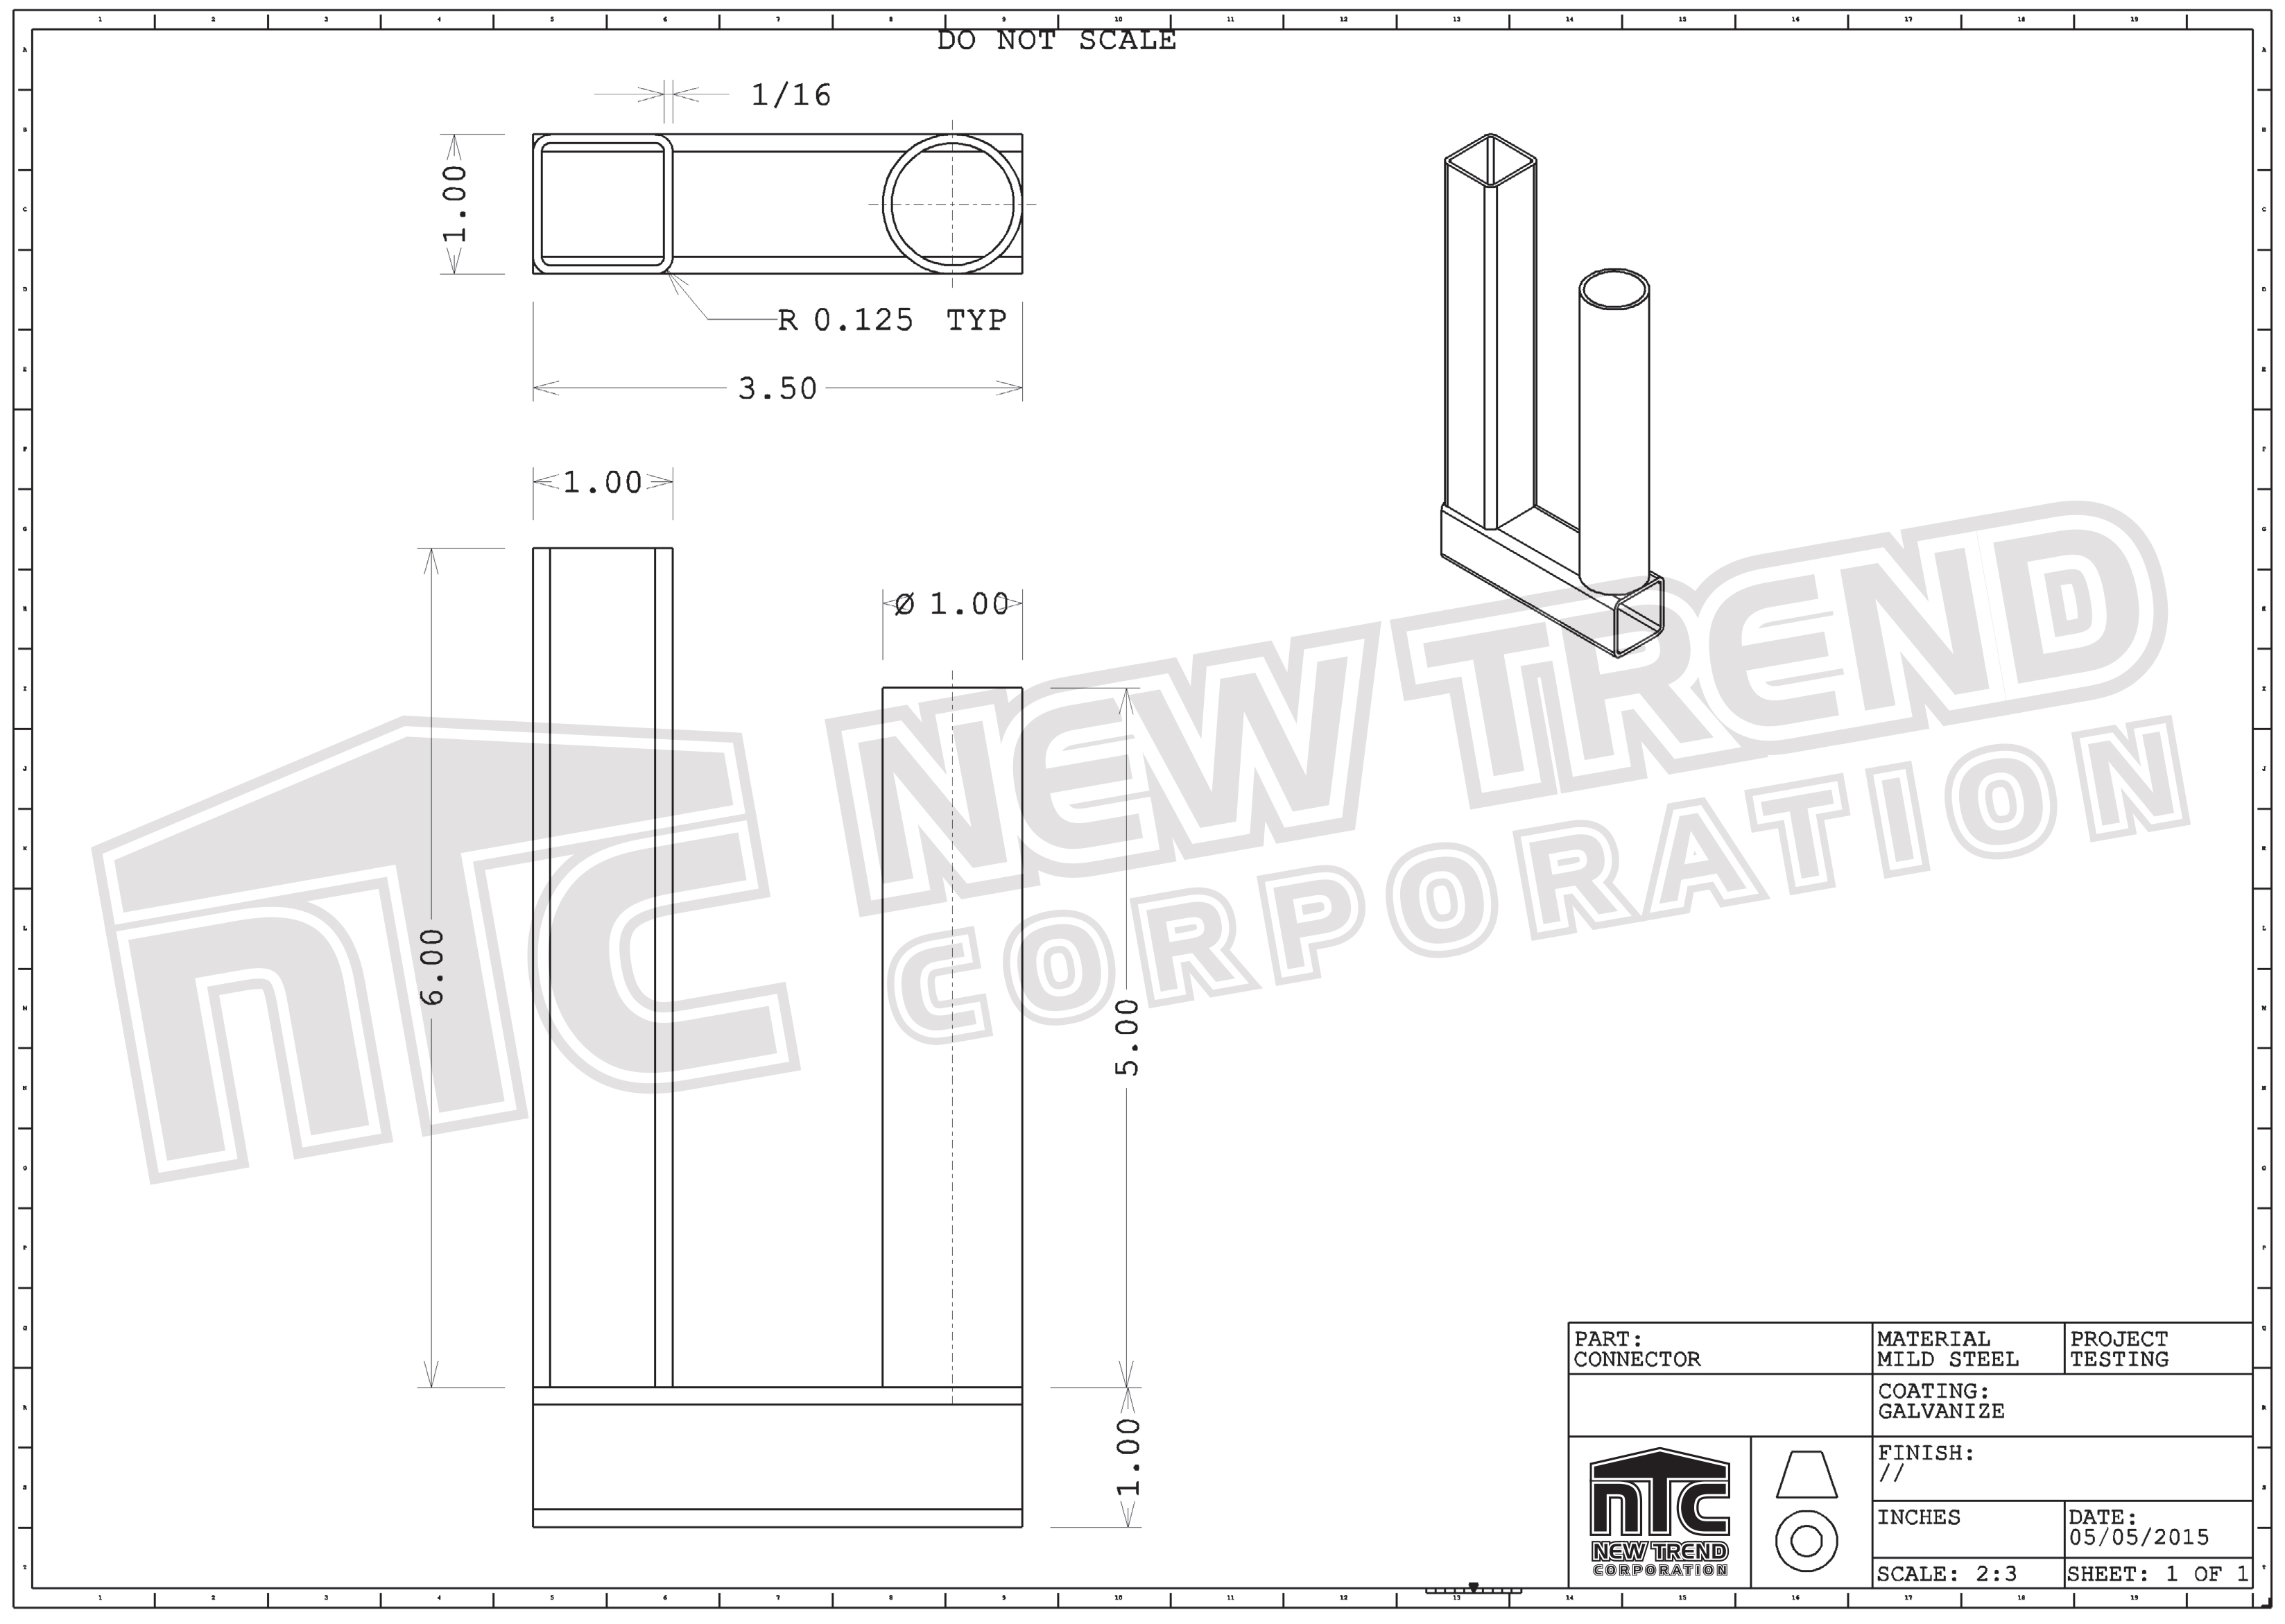 New Trend Fencing Temporary Fencing Drawings